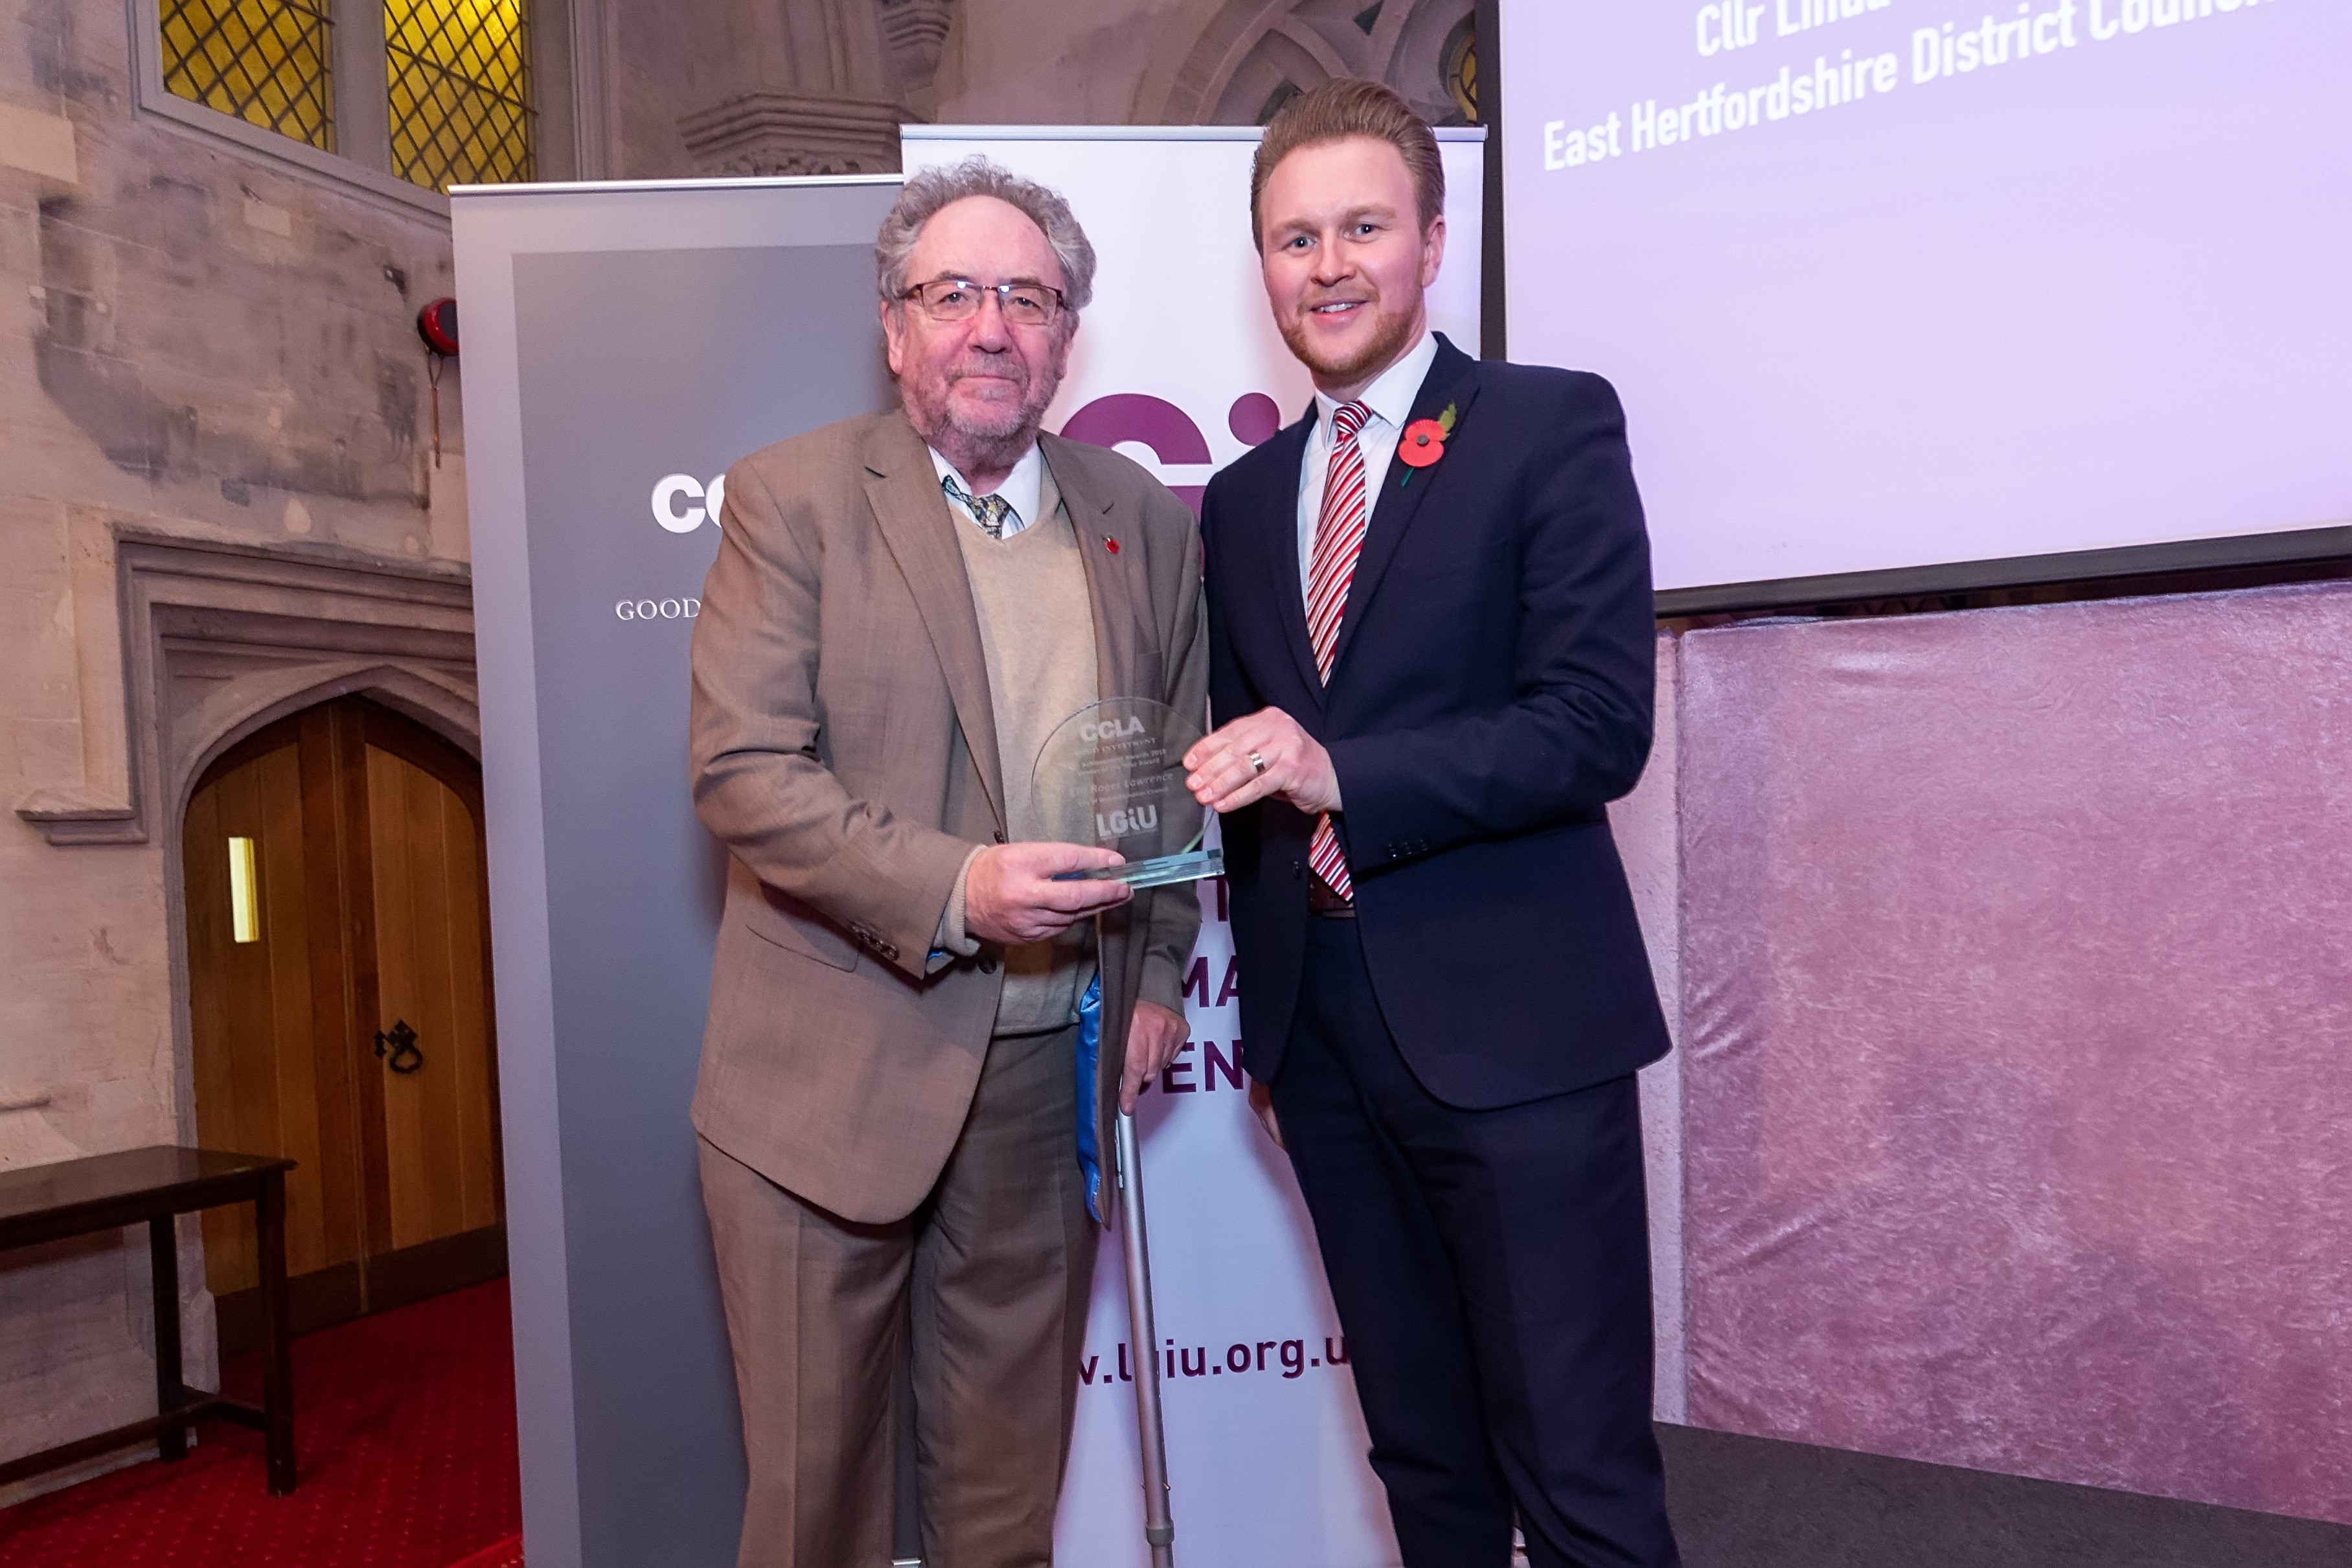 National Award for Cllr Roger Lawrence